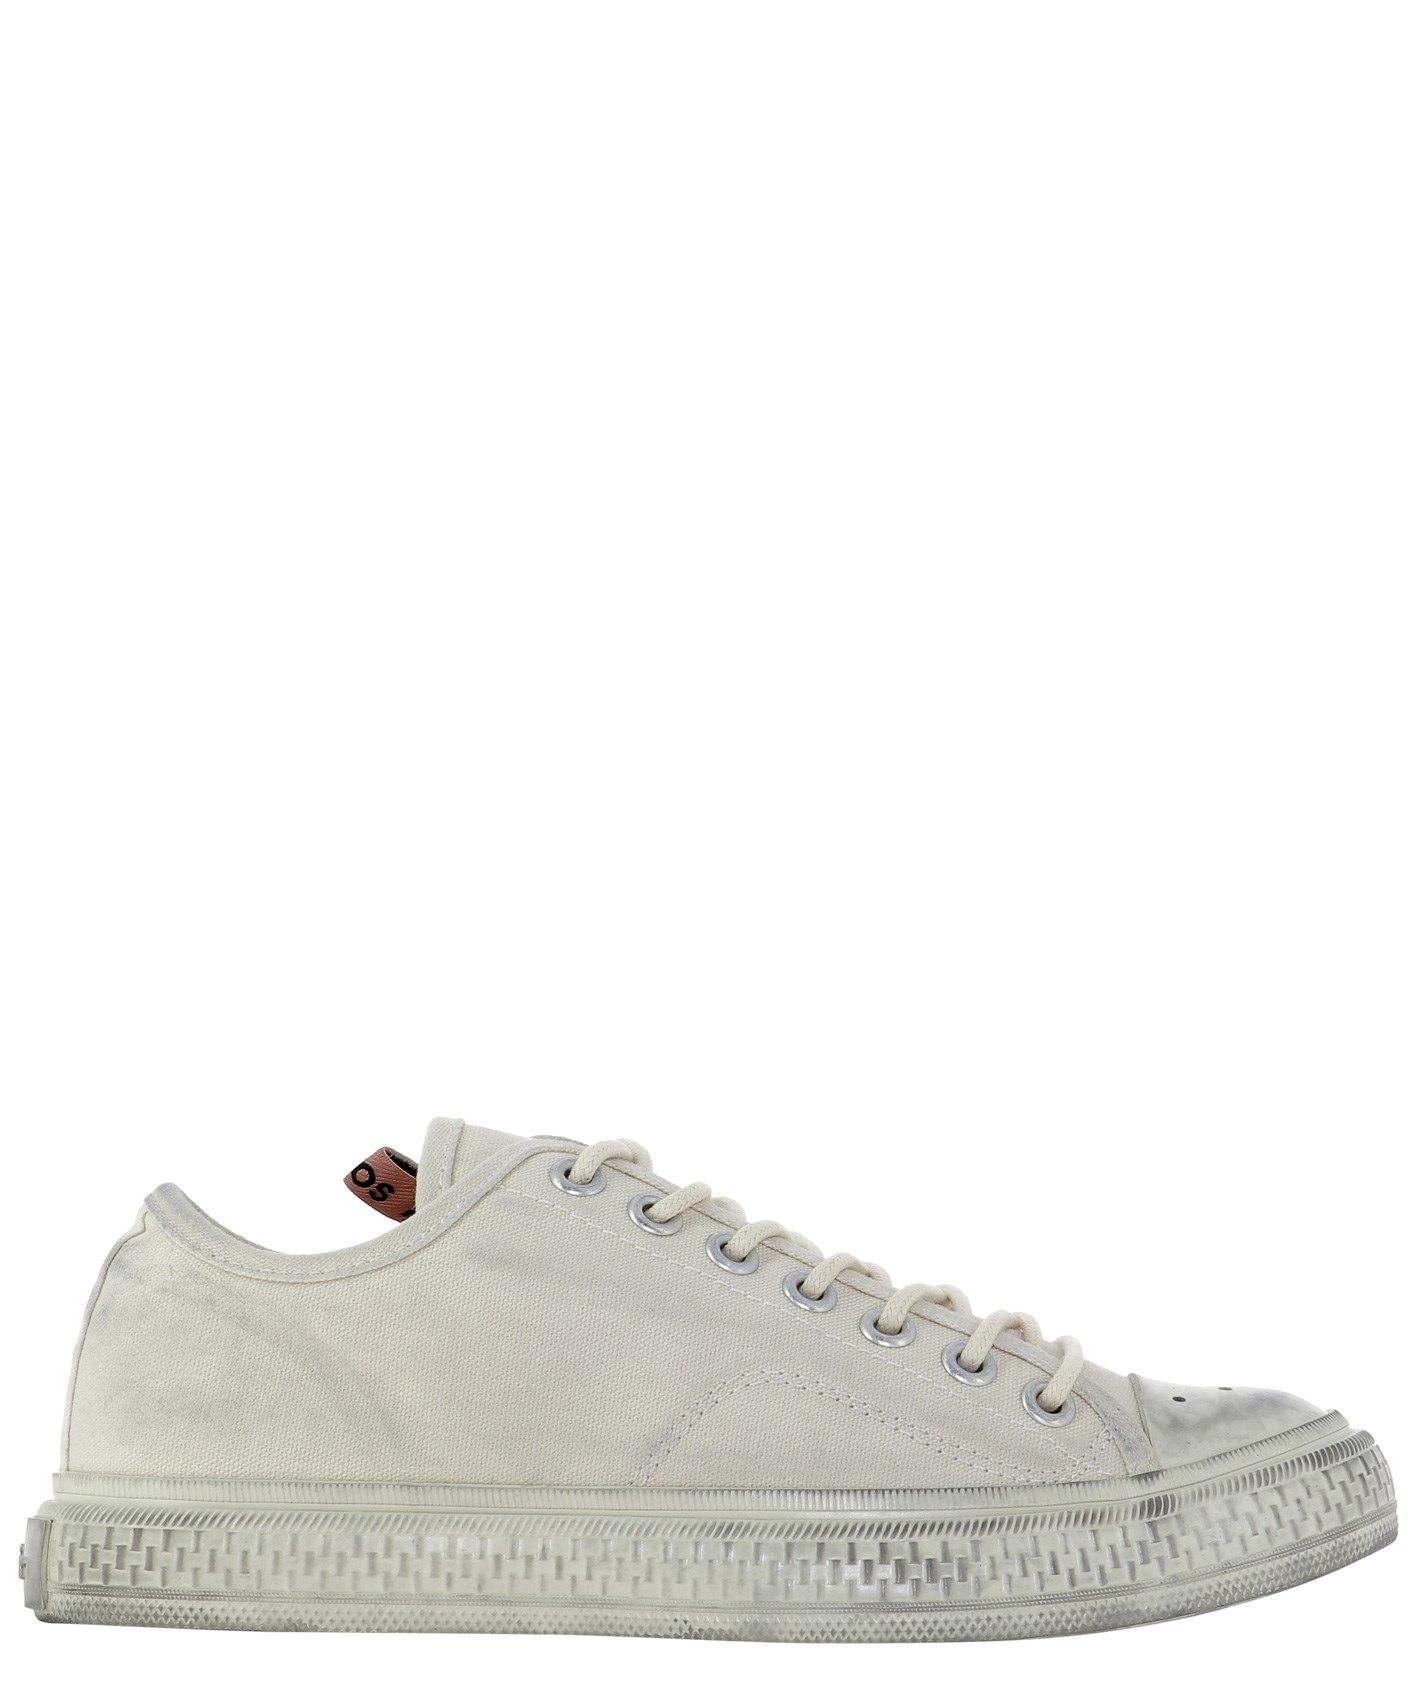 Acne Studios Low tops ACNE STUDIOS WOMEN'S AD0347OFFWHITE WHITE OTHER MATERIALS SNEAKERS